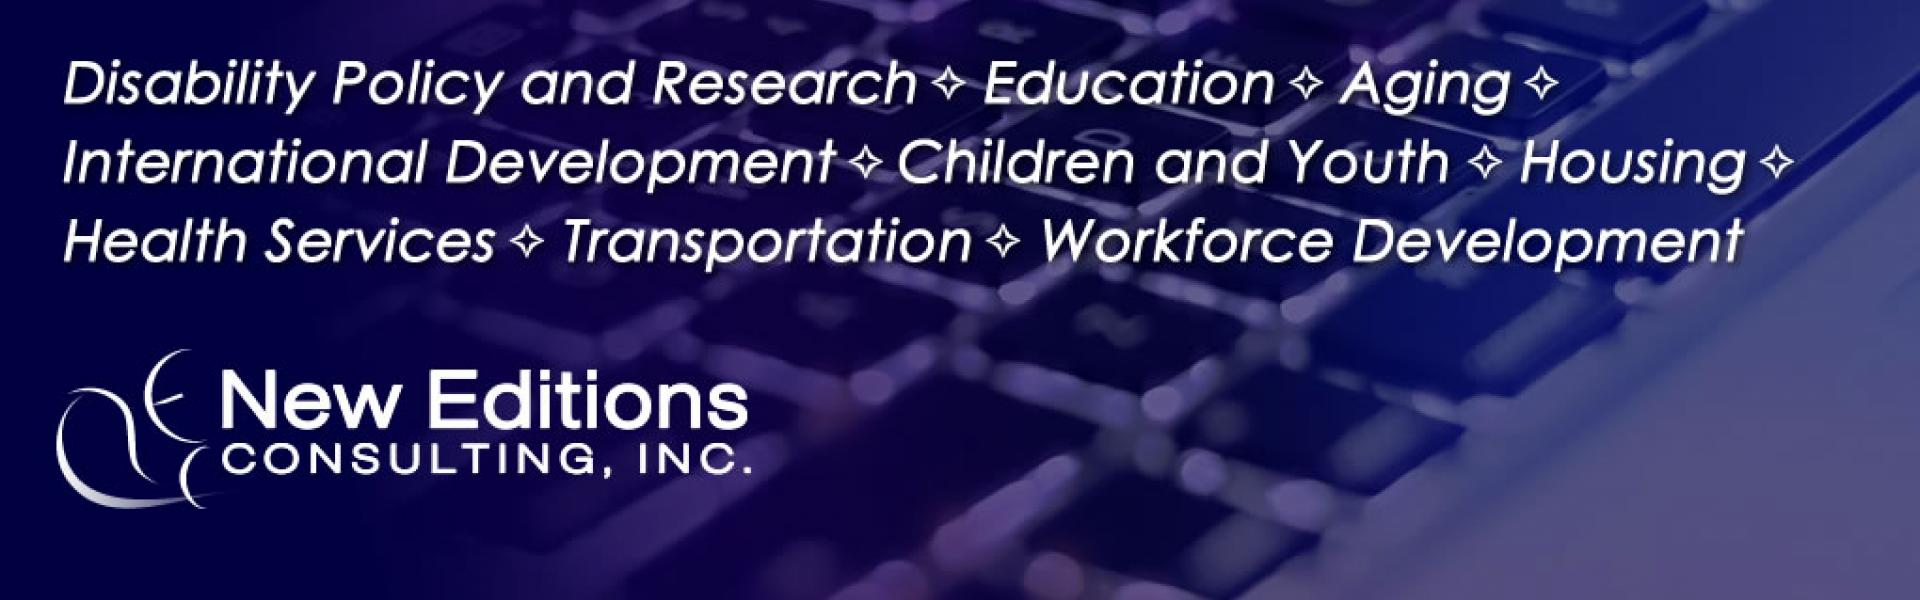 Disability Policy and Research, Education, Aging, International Development, Children and Youth, Health Services, Housing, Transportation, Workforce Development